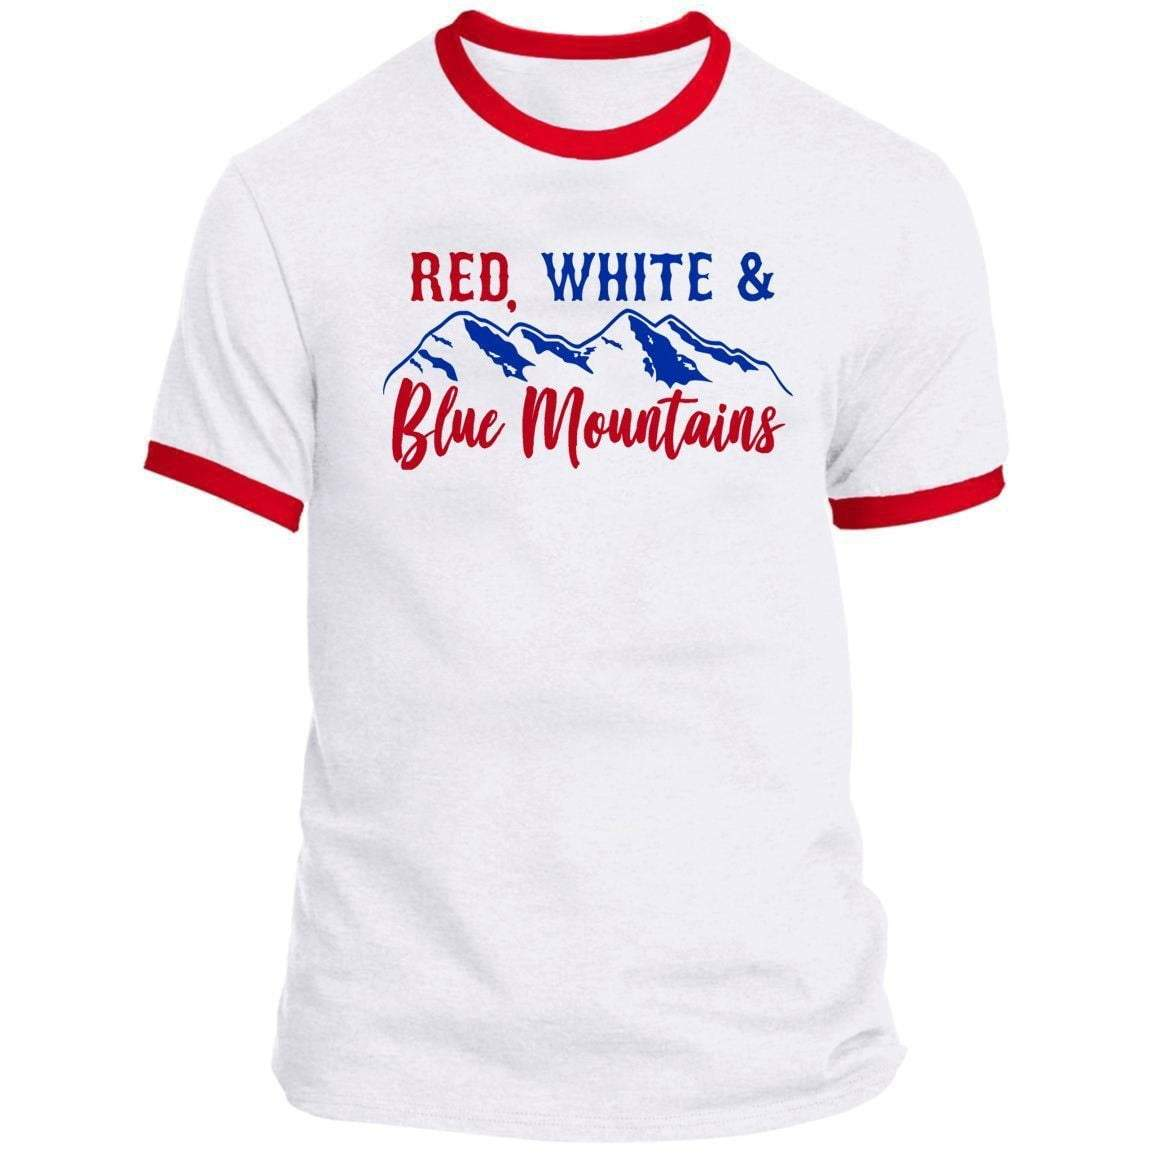 RED WHITE AND BLUE MOUNTAINS Ringer Tee